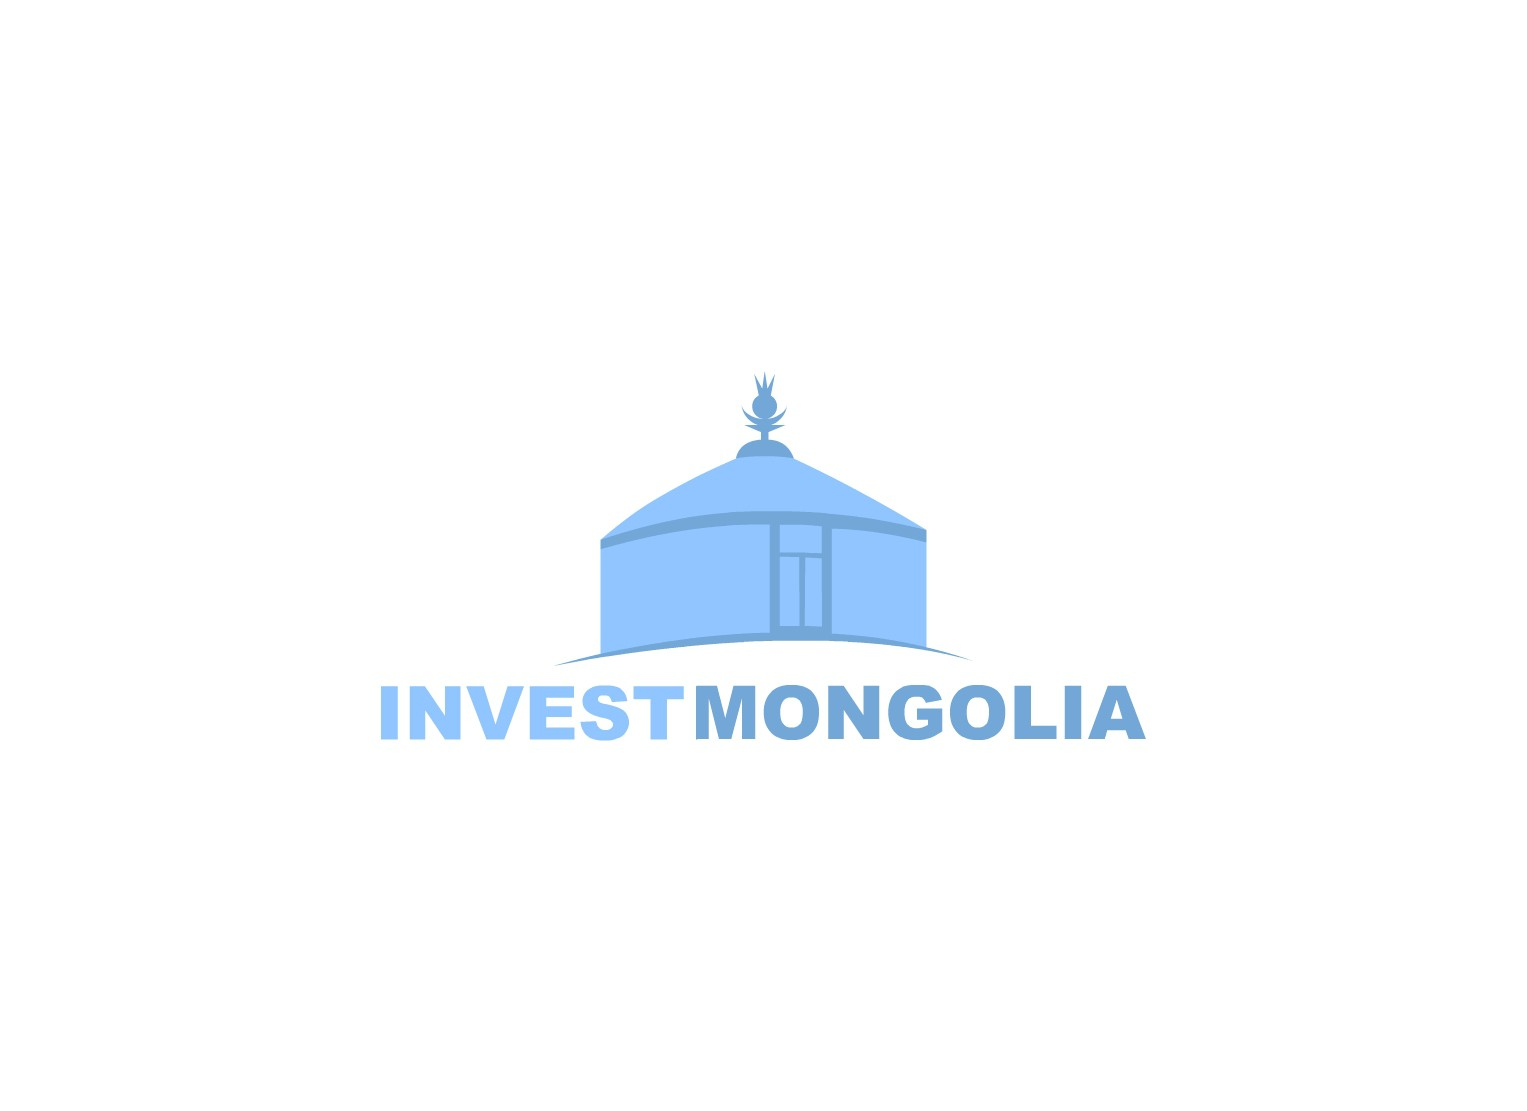 Create the next logo for Invest Mongolia